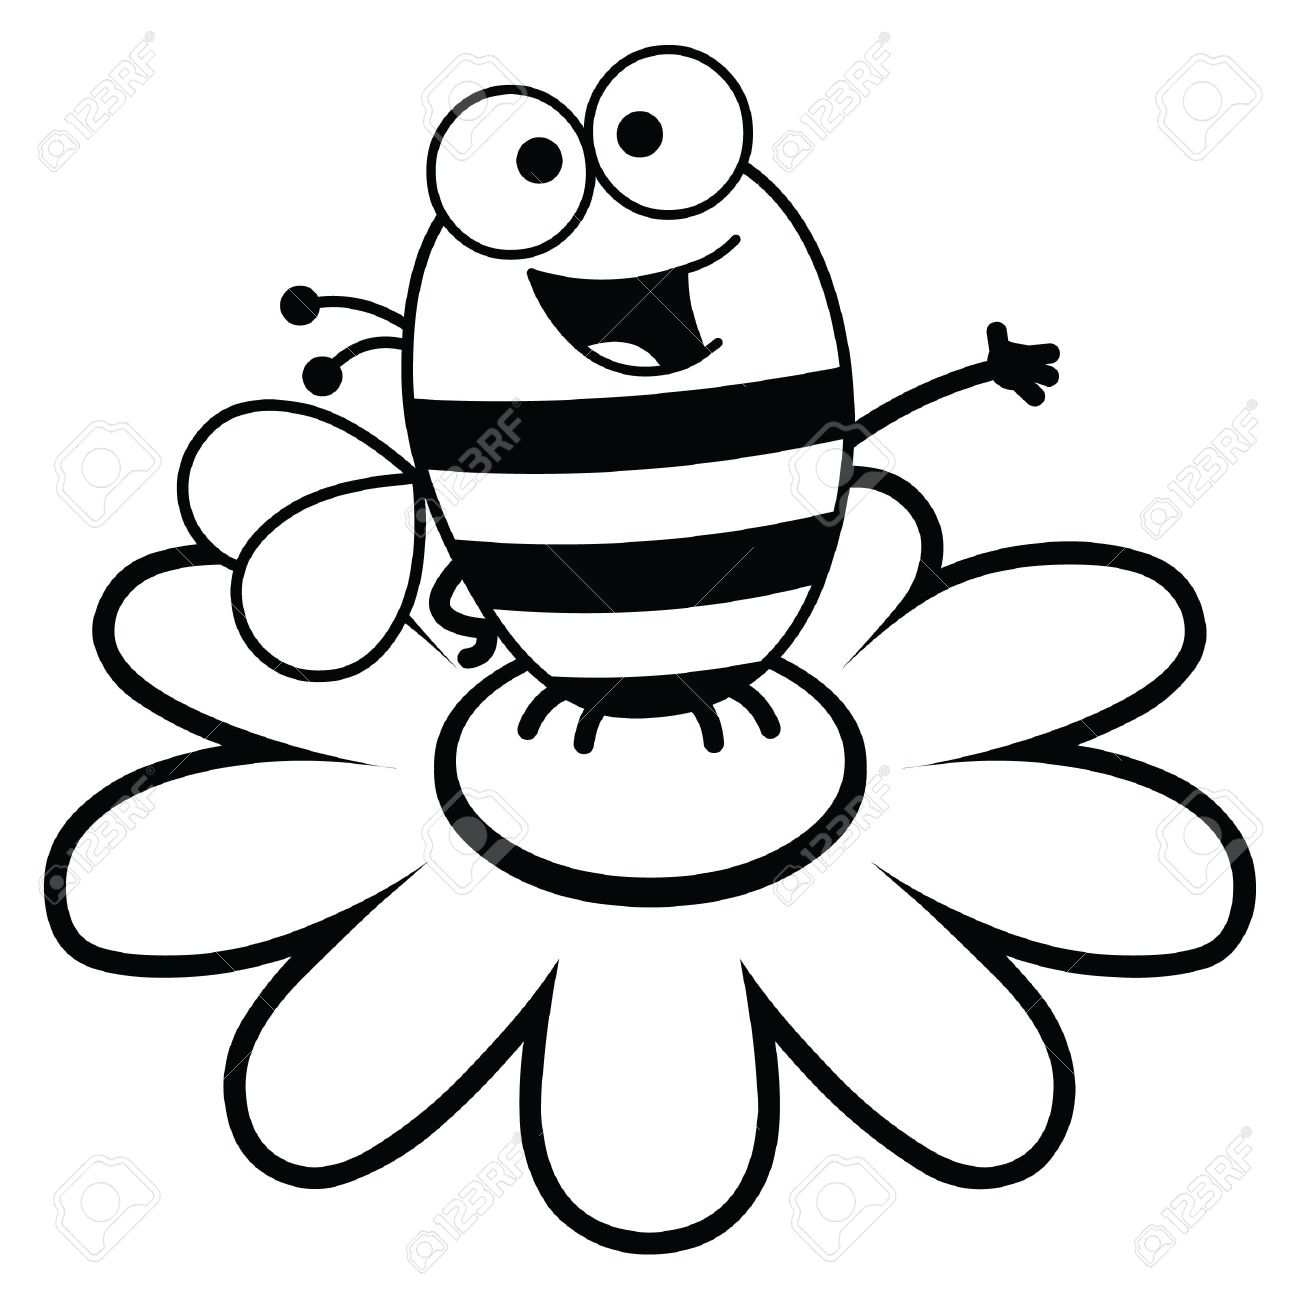 Cartoon Flower Line Drawing : Bee simple drawing at getdrawings free for personal